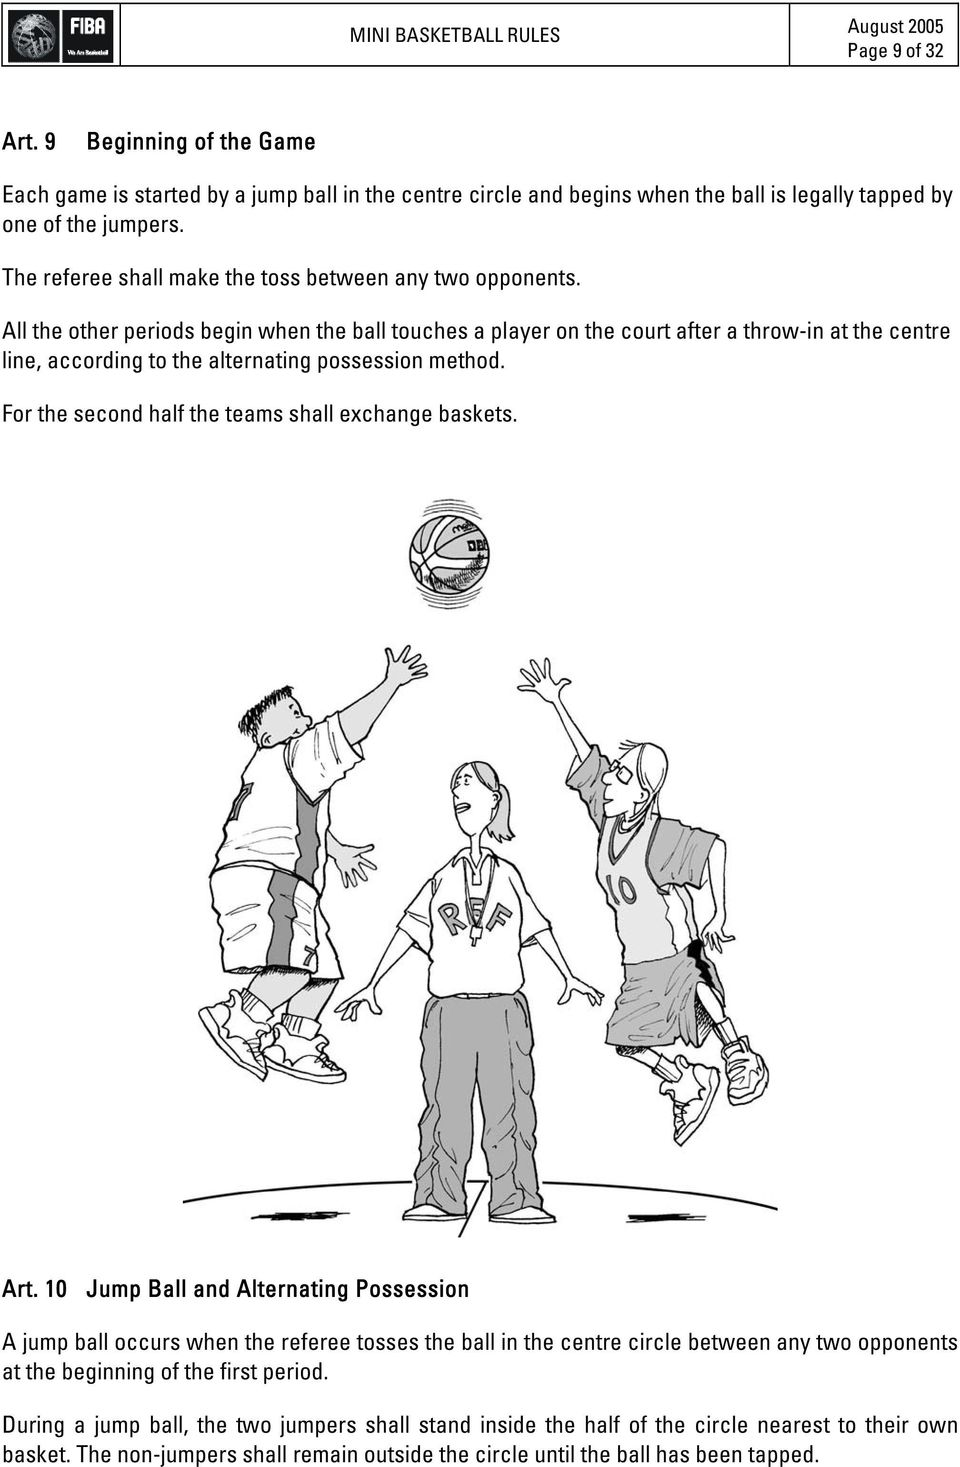 All the other periods begin when the ball touches a player on the court after a throw-in at the centre line, according to the alternating possession method.